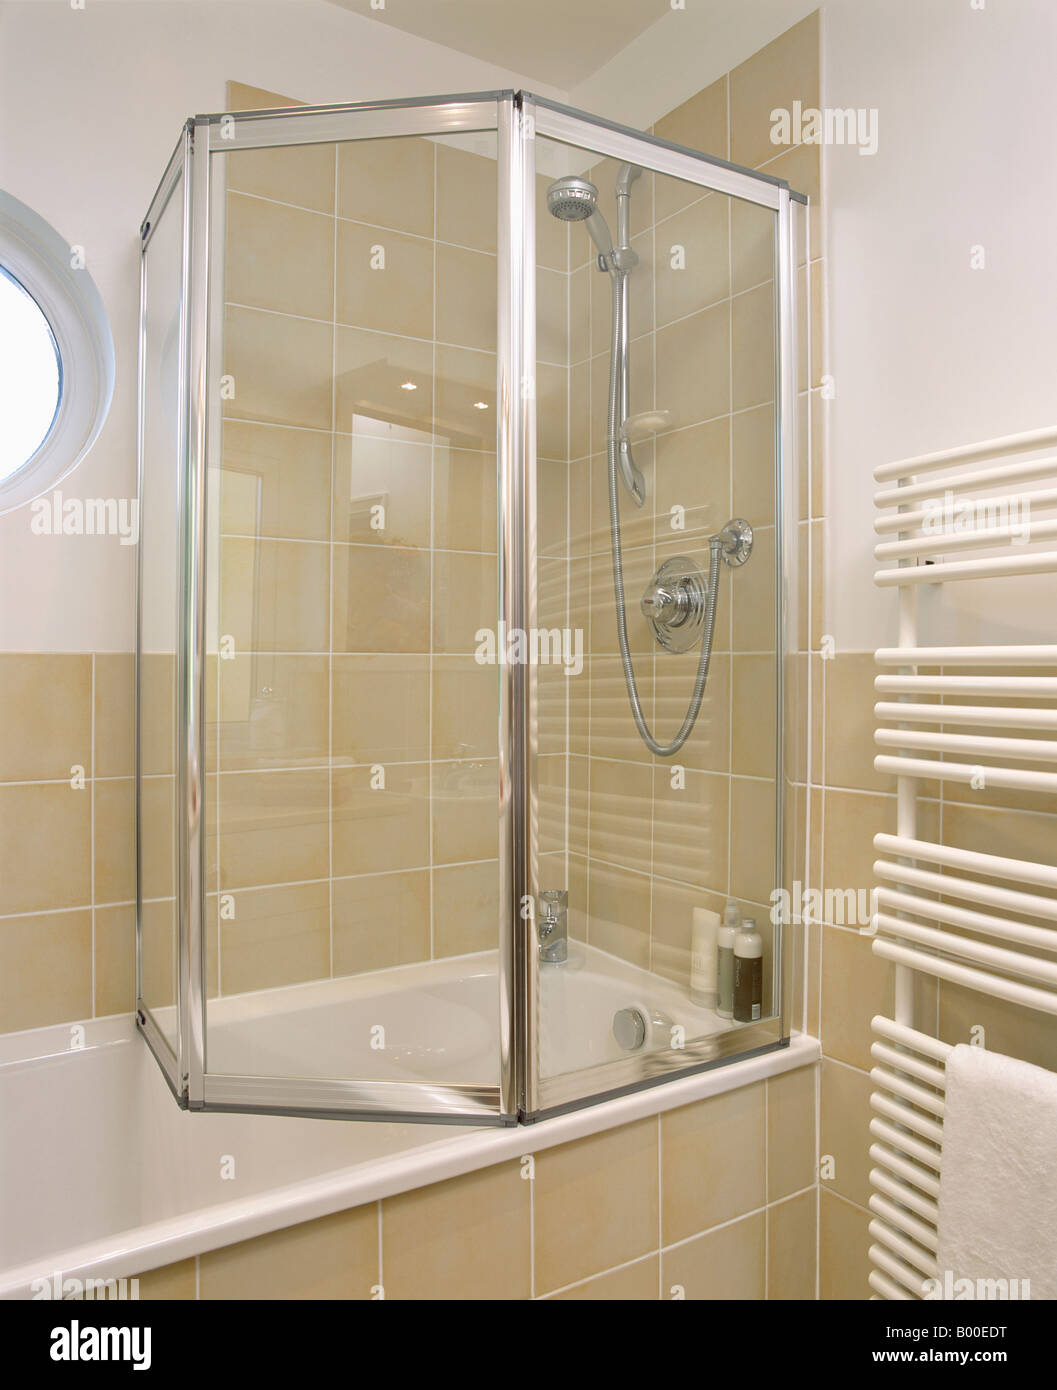 Delicieux Folding Glass Shower Doors On Bath In Modern Bathroom With Neutral Wall  Tiles